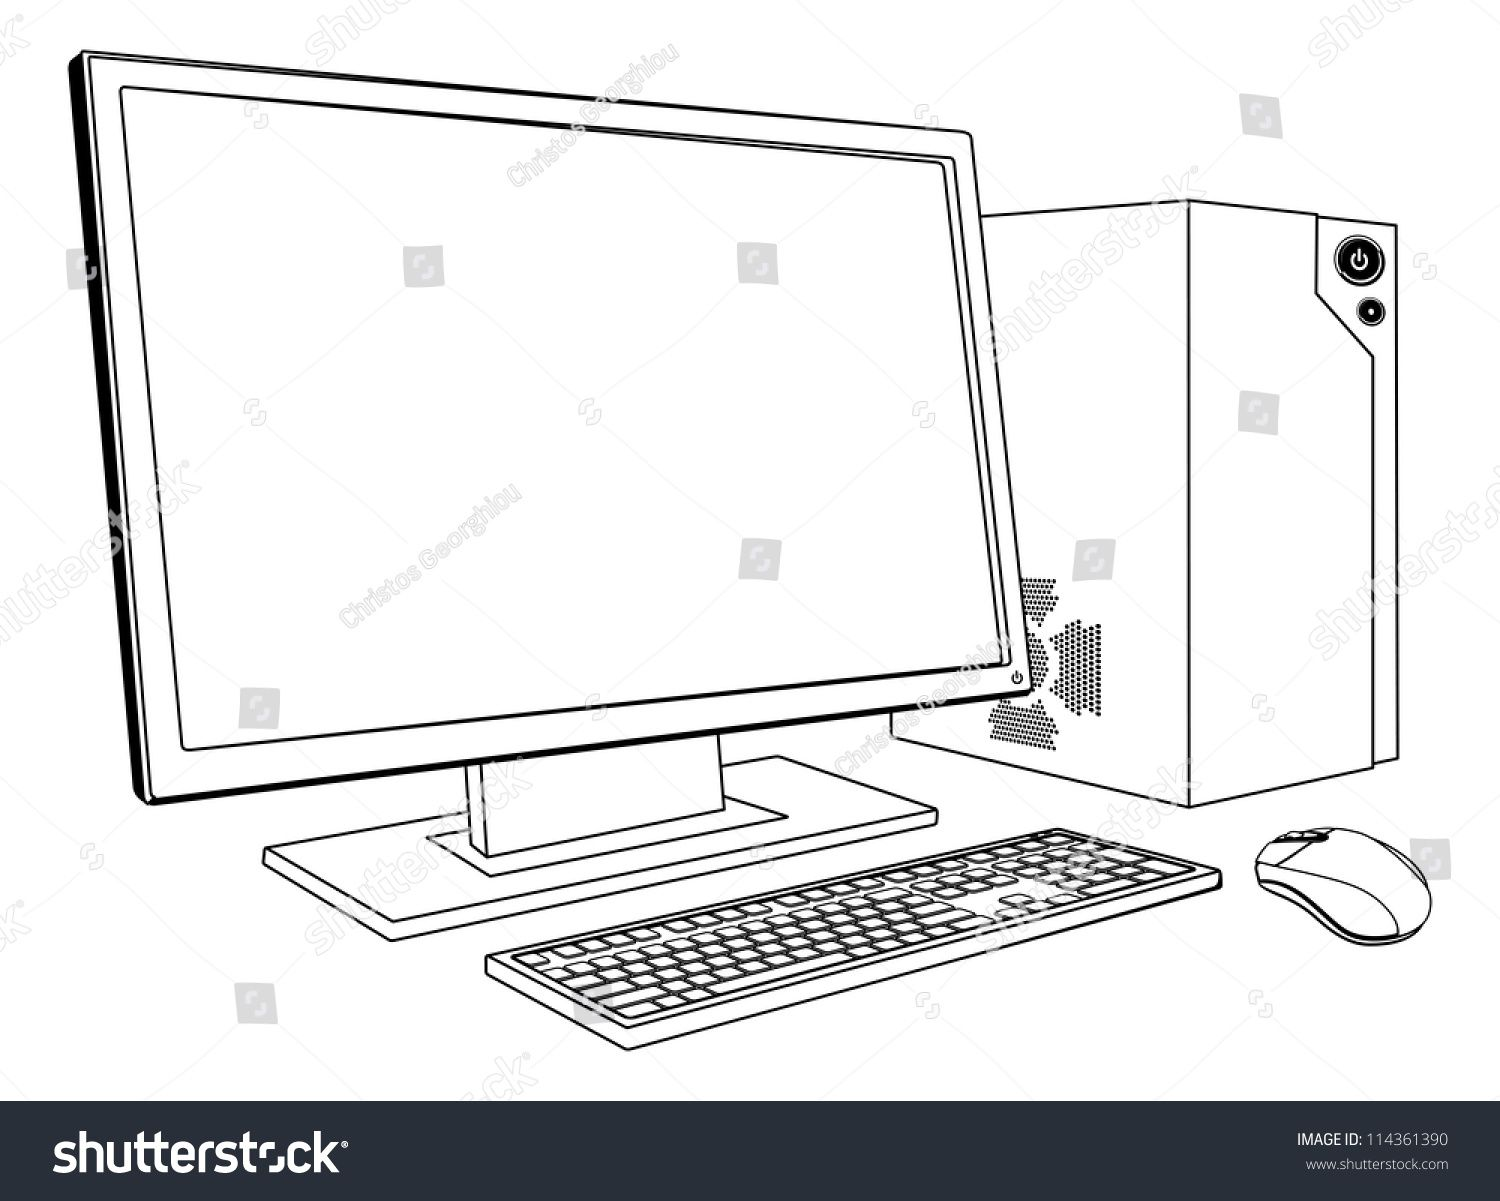 A Black And White Illustration Of Desktop Pc Computer Workstation Monitor Mouse Keyboard And Tower Ad In 2020 Black And White Illustration Desktop Pc Pc Computer